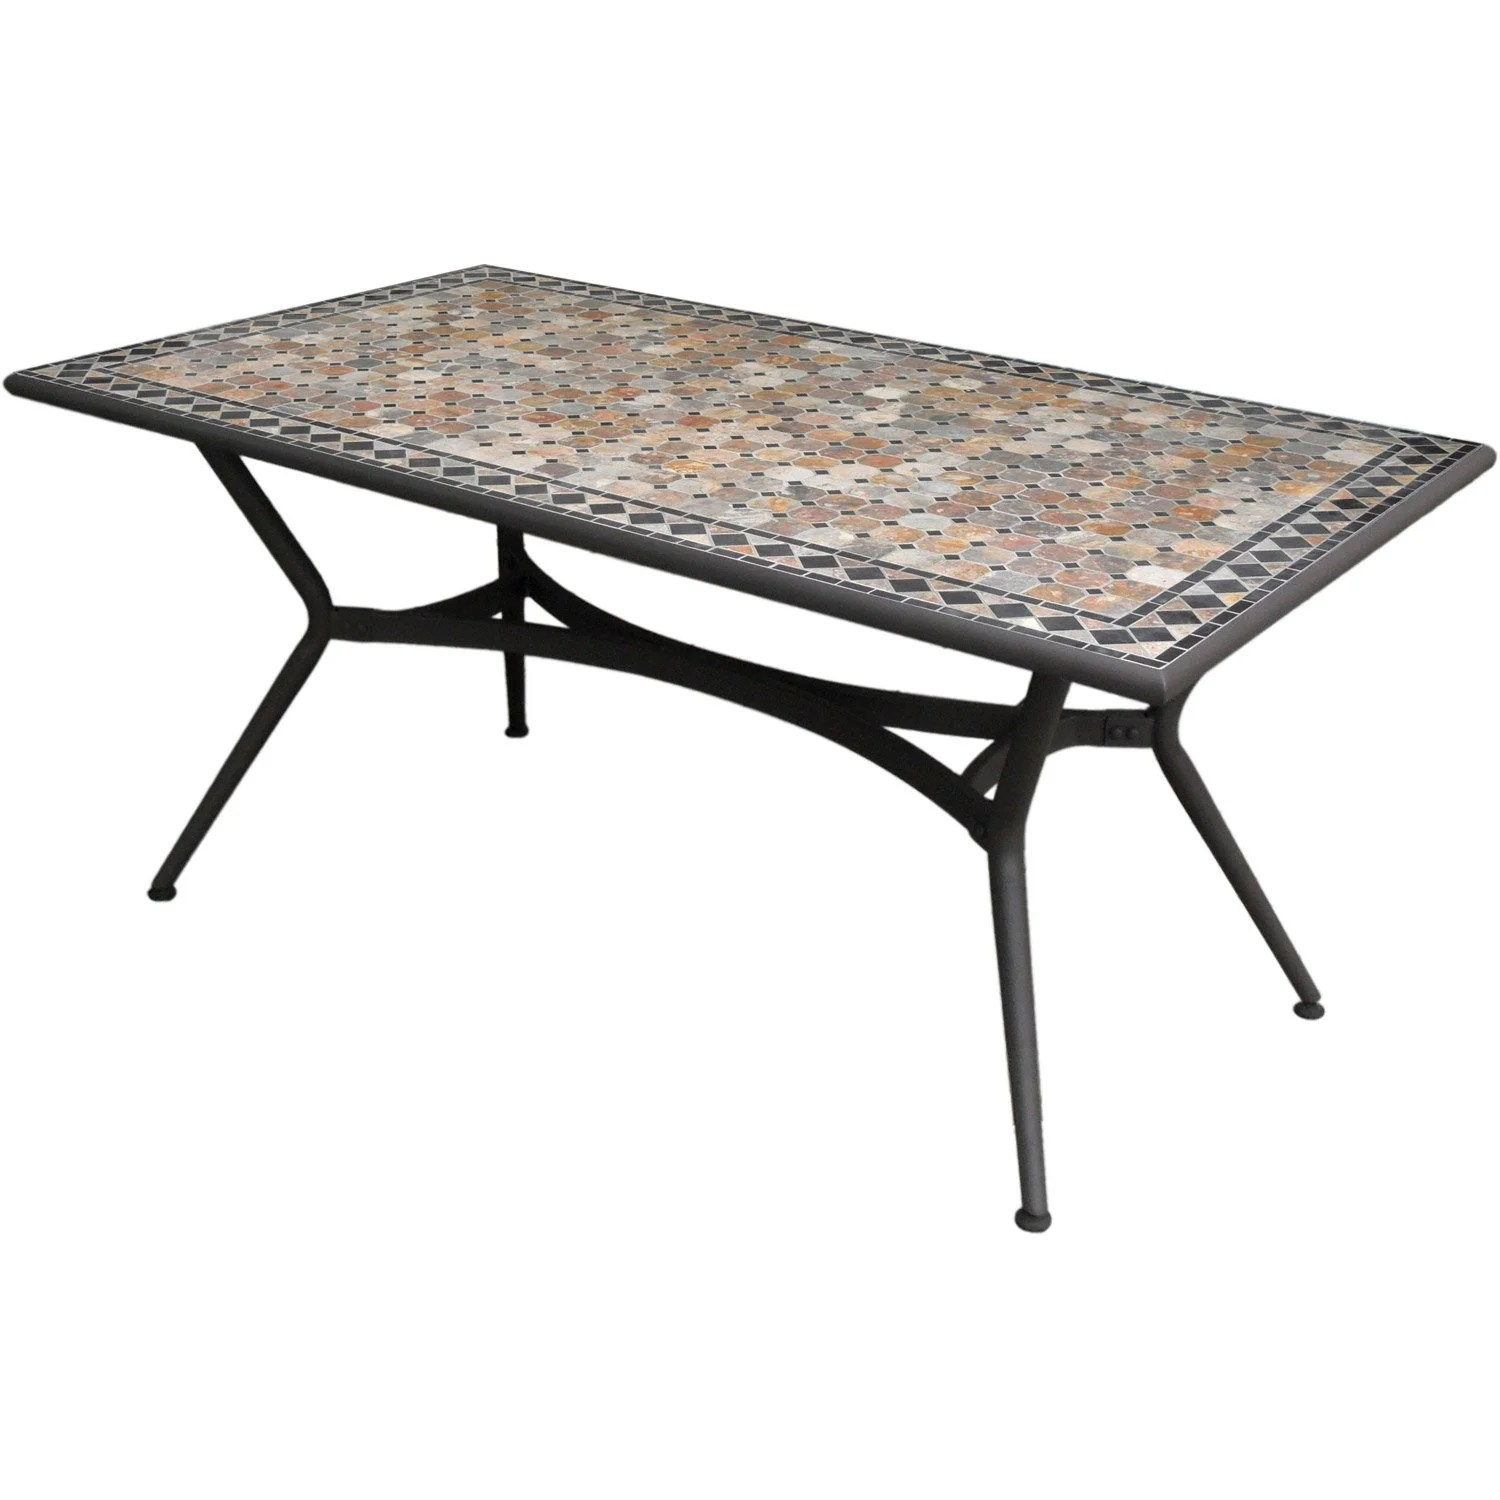 Table Fer Jardin Table De Jardin Marocco Rectangulaire Anthracite 6